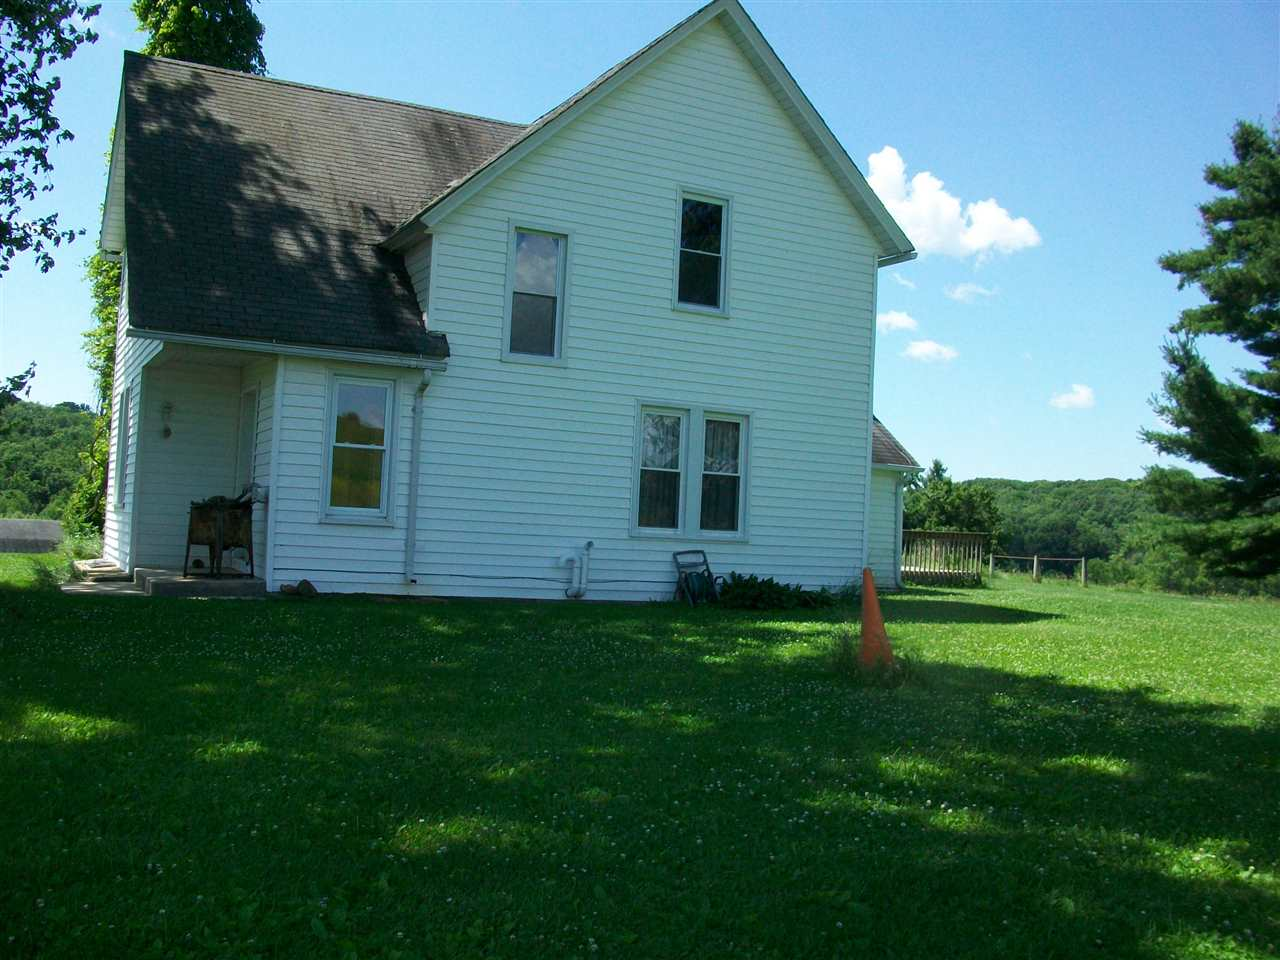 7893 Mckenna Rd, Moscow, WI 53544